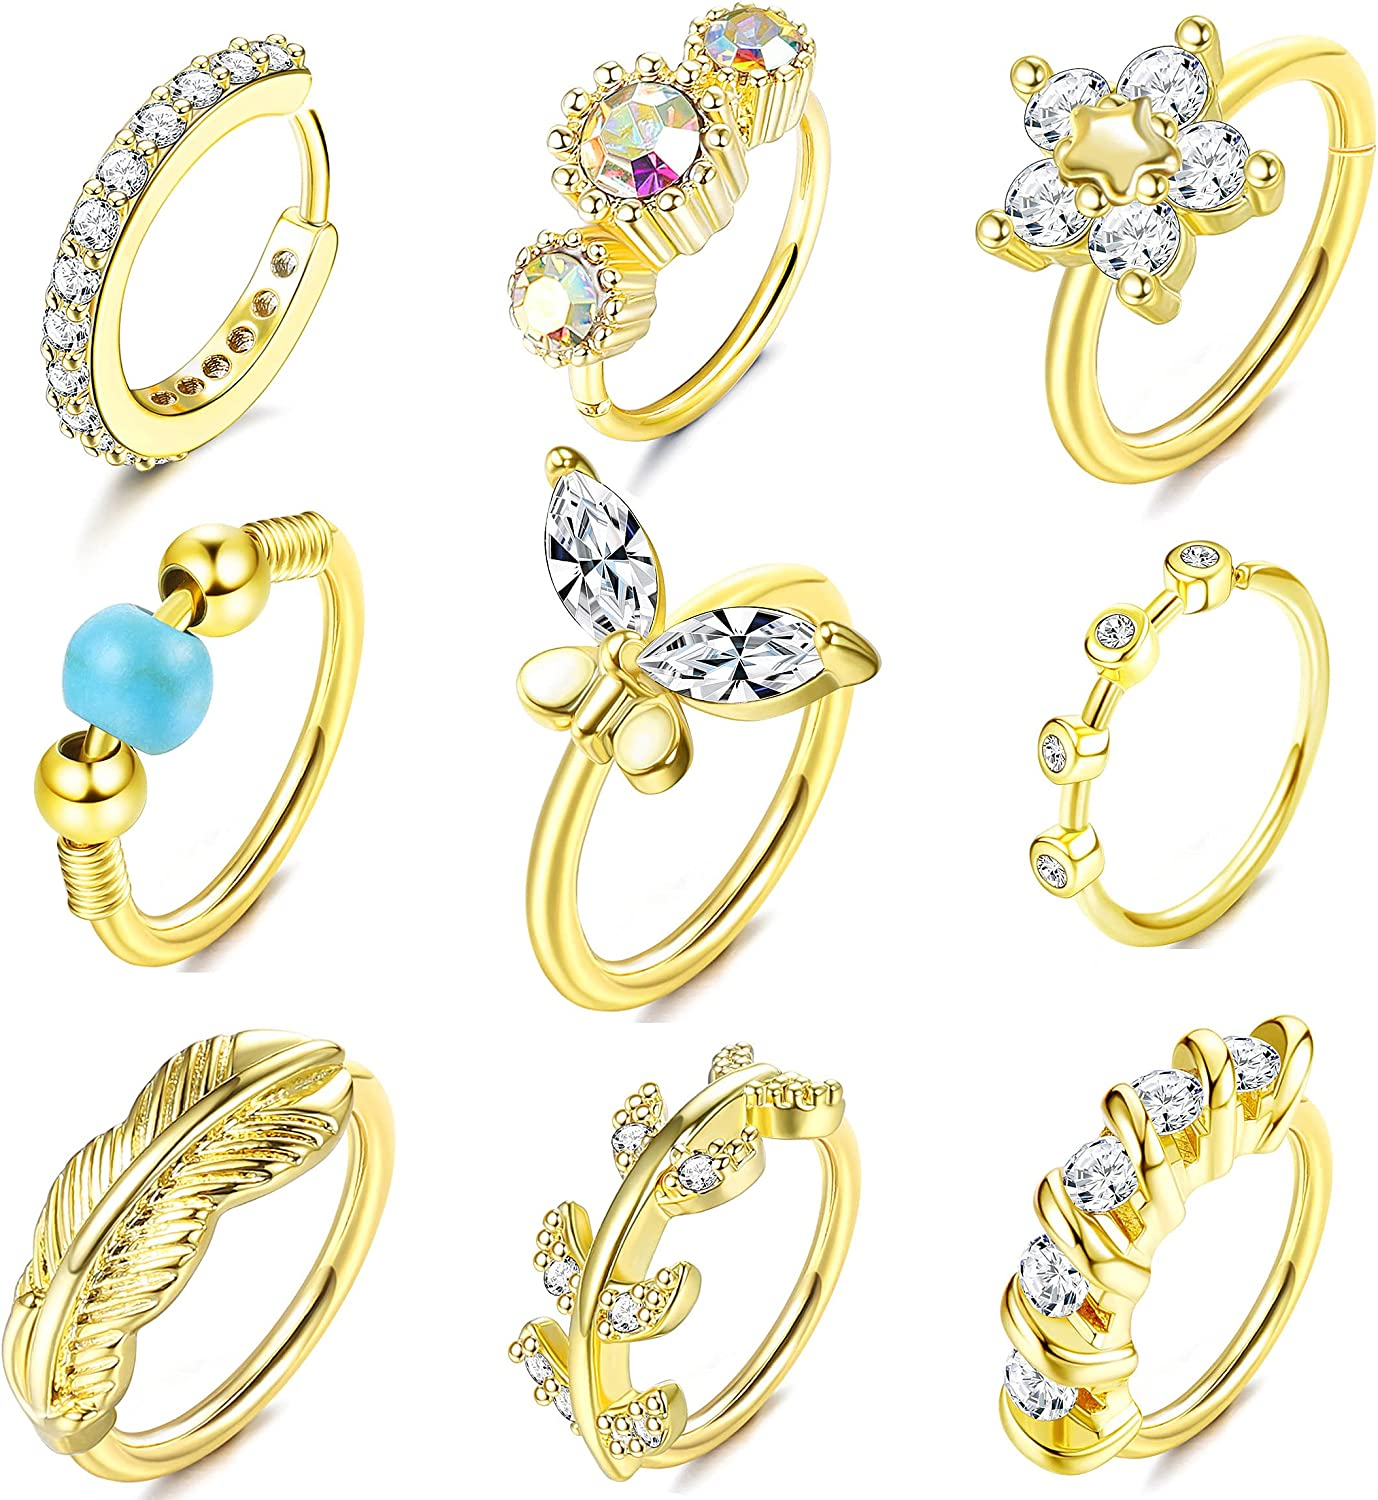 Sailimue 9Pcs 20G Nose Ring Hoops Paved CZ Flower Leaf Hoops Nose Septum Rings Helix Cartilage Earrings Ear Nose Body Piercing Ring for Women Men 8mm